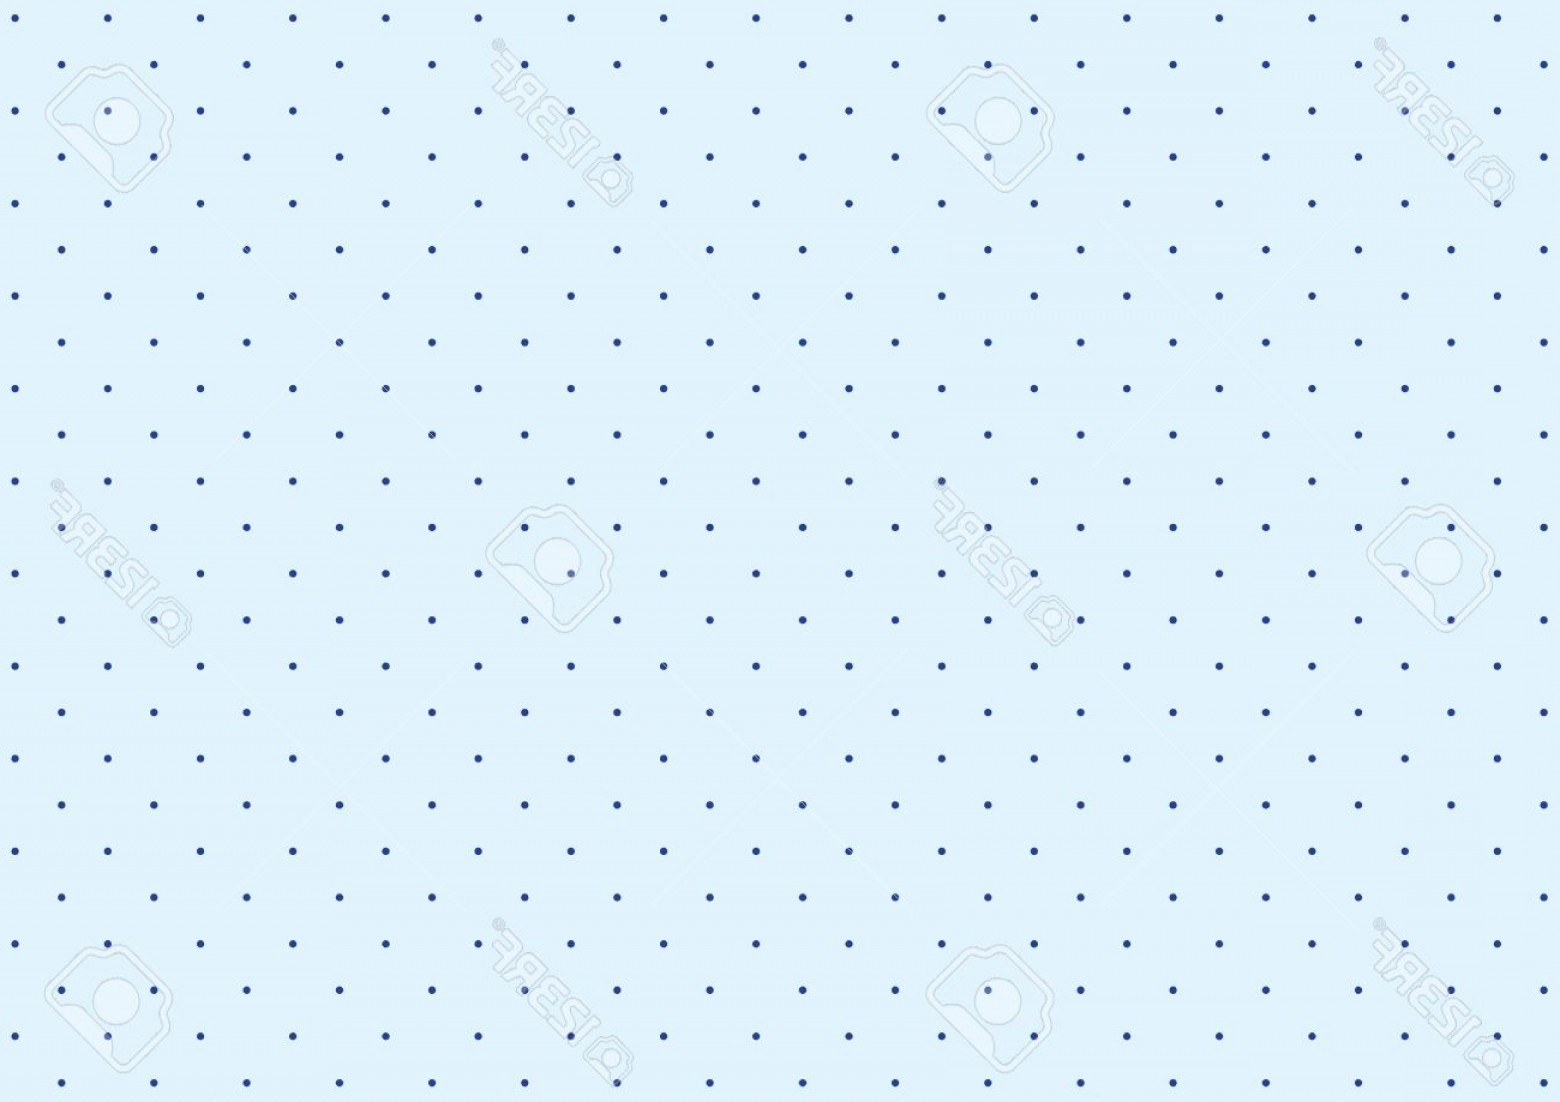 Polka Dot Background Vector Y: Photostock Vector Simple Polka Dot Pattern Of White And Blue Dots Background